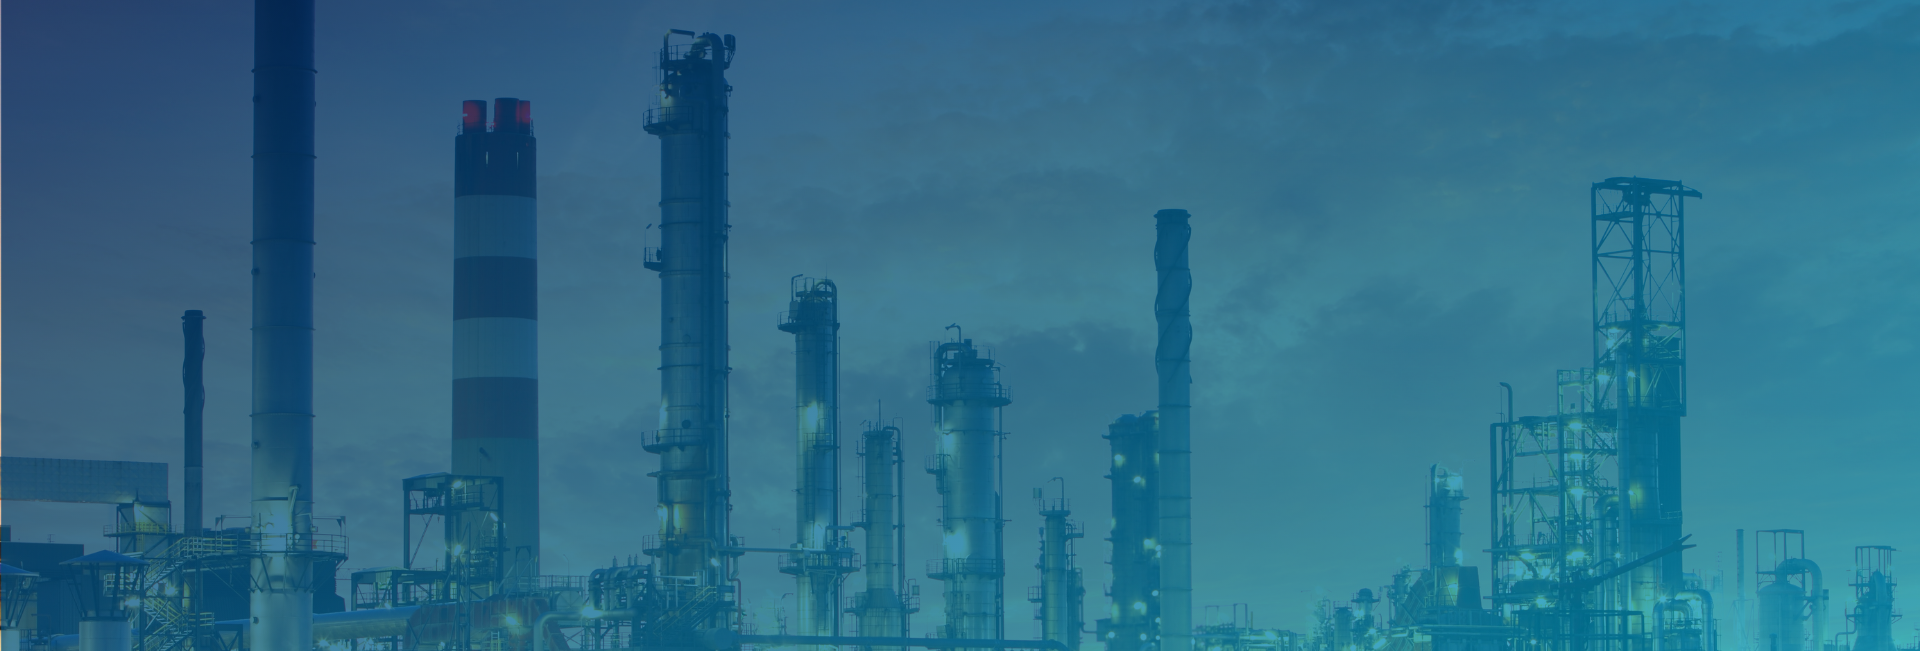 Intelligent Automation, Opportunities & Challenges in Energy & Manufacturing Industry